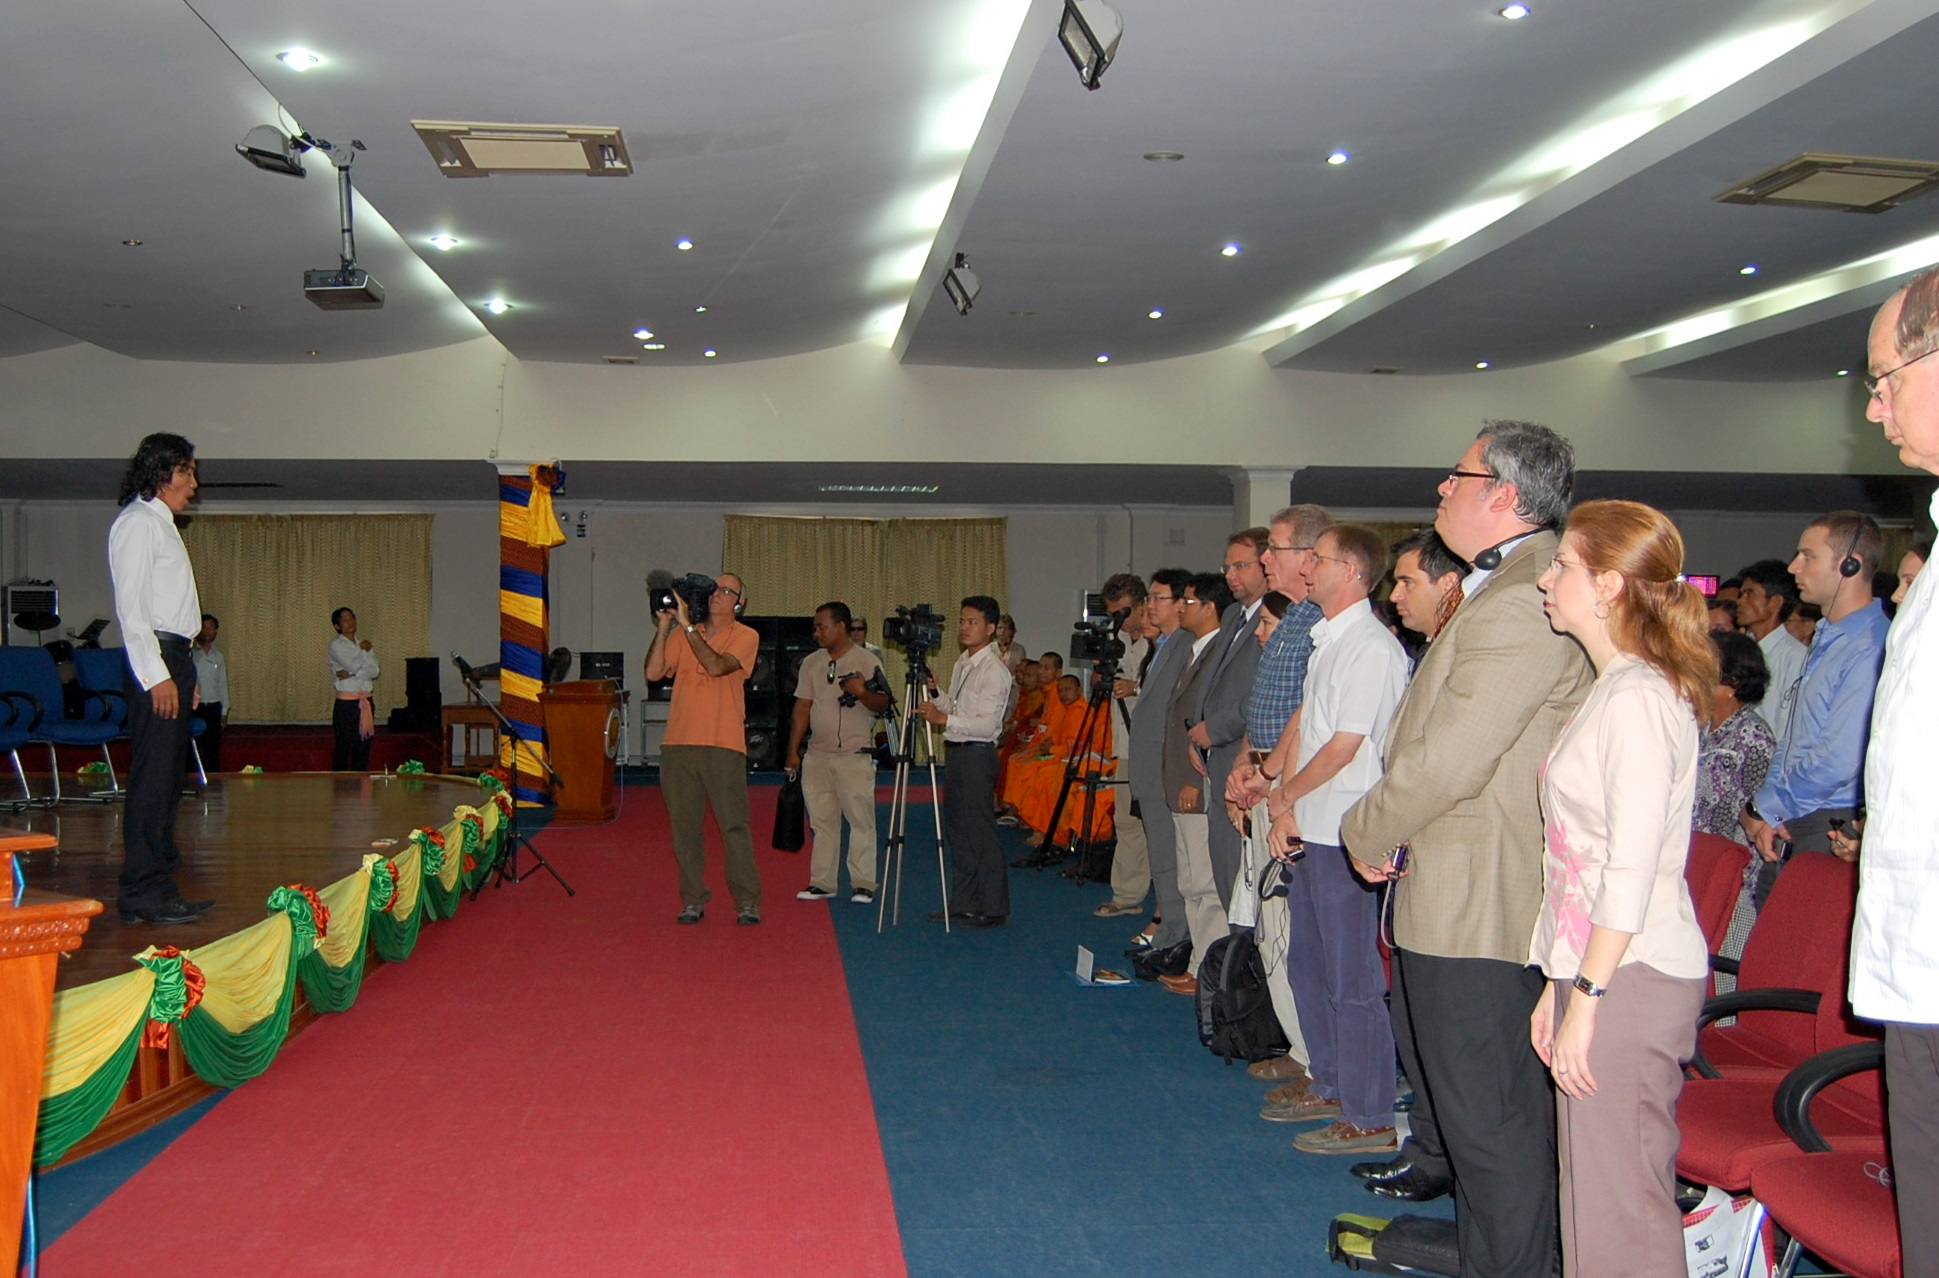 Khuon Sethisak singing national anthem at CJR public forum, 23 July 2010